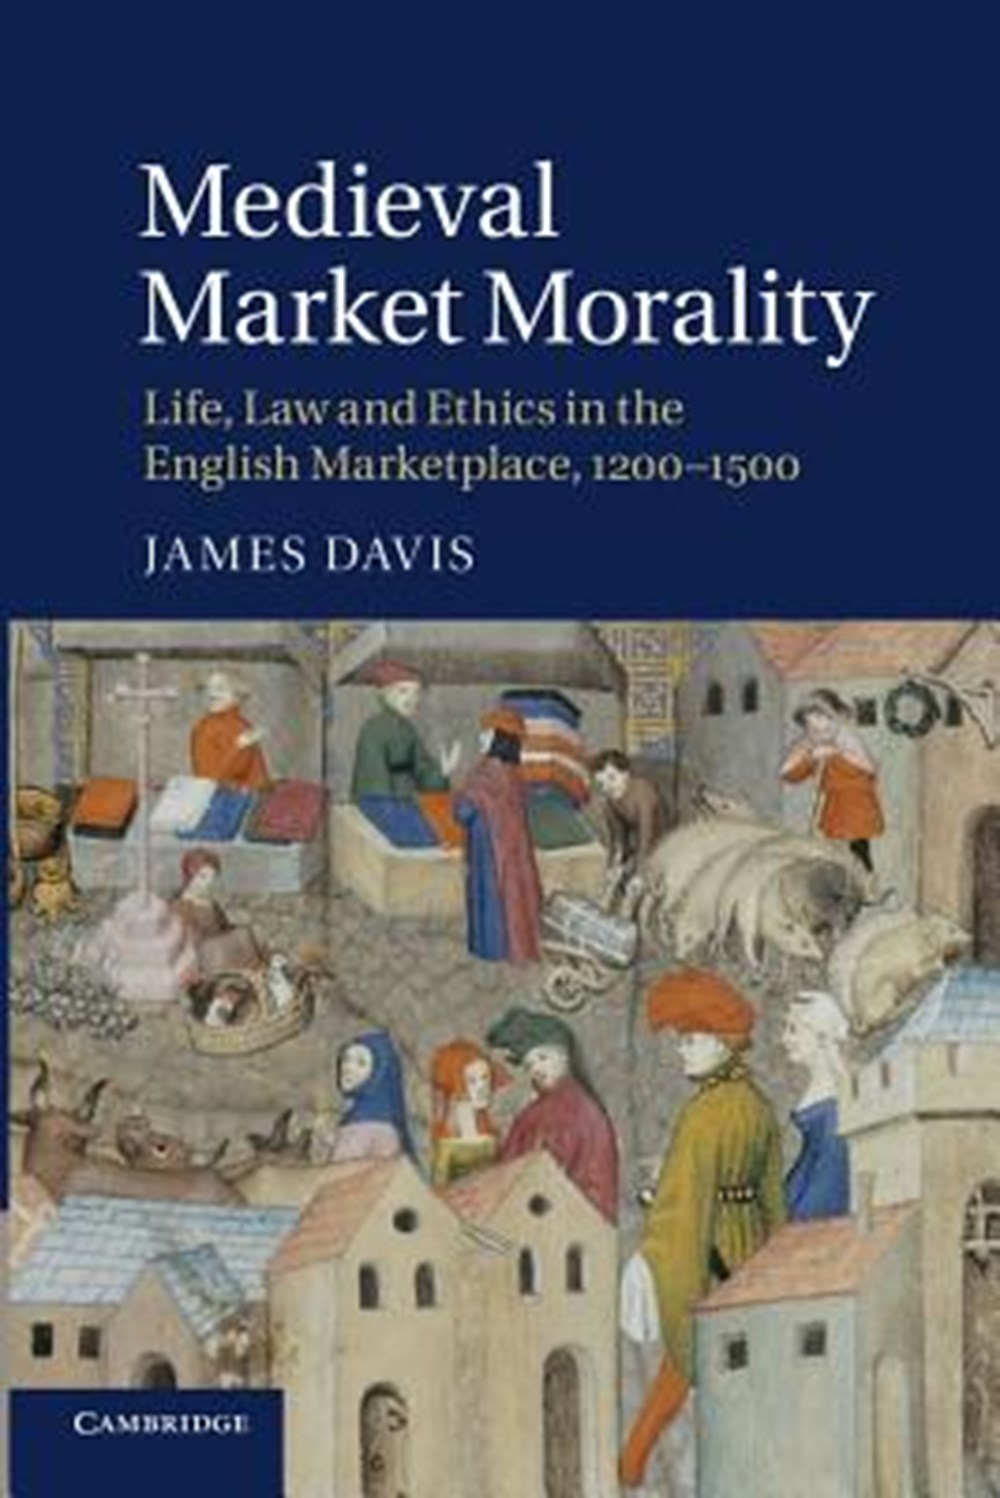 Medieval Market Morality Life, Law and Ethics in the English Marketplace, 1200 1500